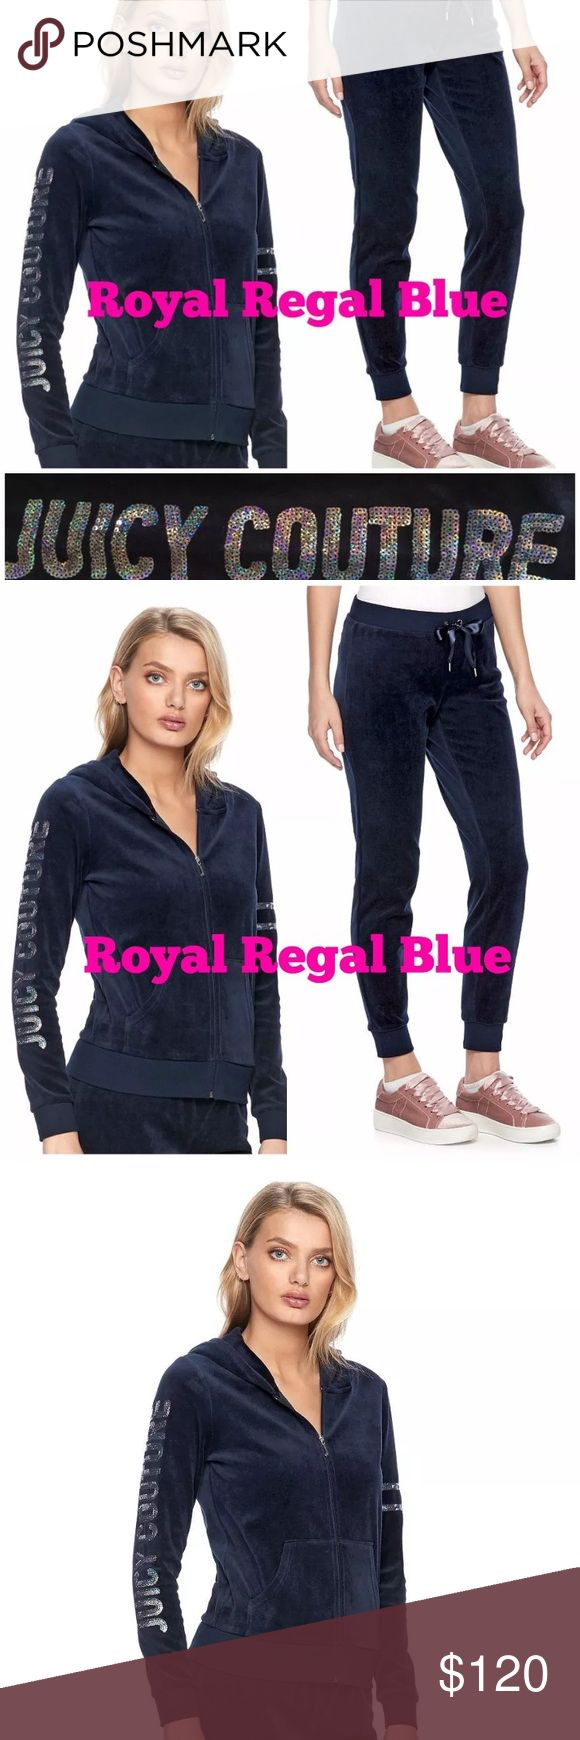 NWT Juicy Couture Tracksuit Regal Blue size Small HOODIE: Flaunt your signature Juicy Couture style in this women's velour hoodie jacket, featuring bold embellished details.  PRODUCT FEATURES Attached hood Embellished details 2-pocket Zip front Long sleeves Soft velour construction  Cotton, polyester Machine wash Imported  Jogger PANTS:  Create a relaxed look with these luxurious women's velour joggers from Juicy Couture.  PRODUCT FEATURES Ribbed trim Soft velour construction FIT & SIZING…